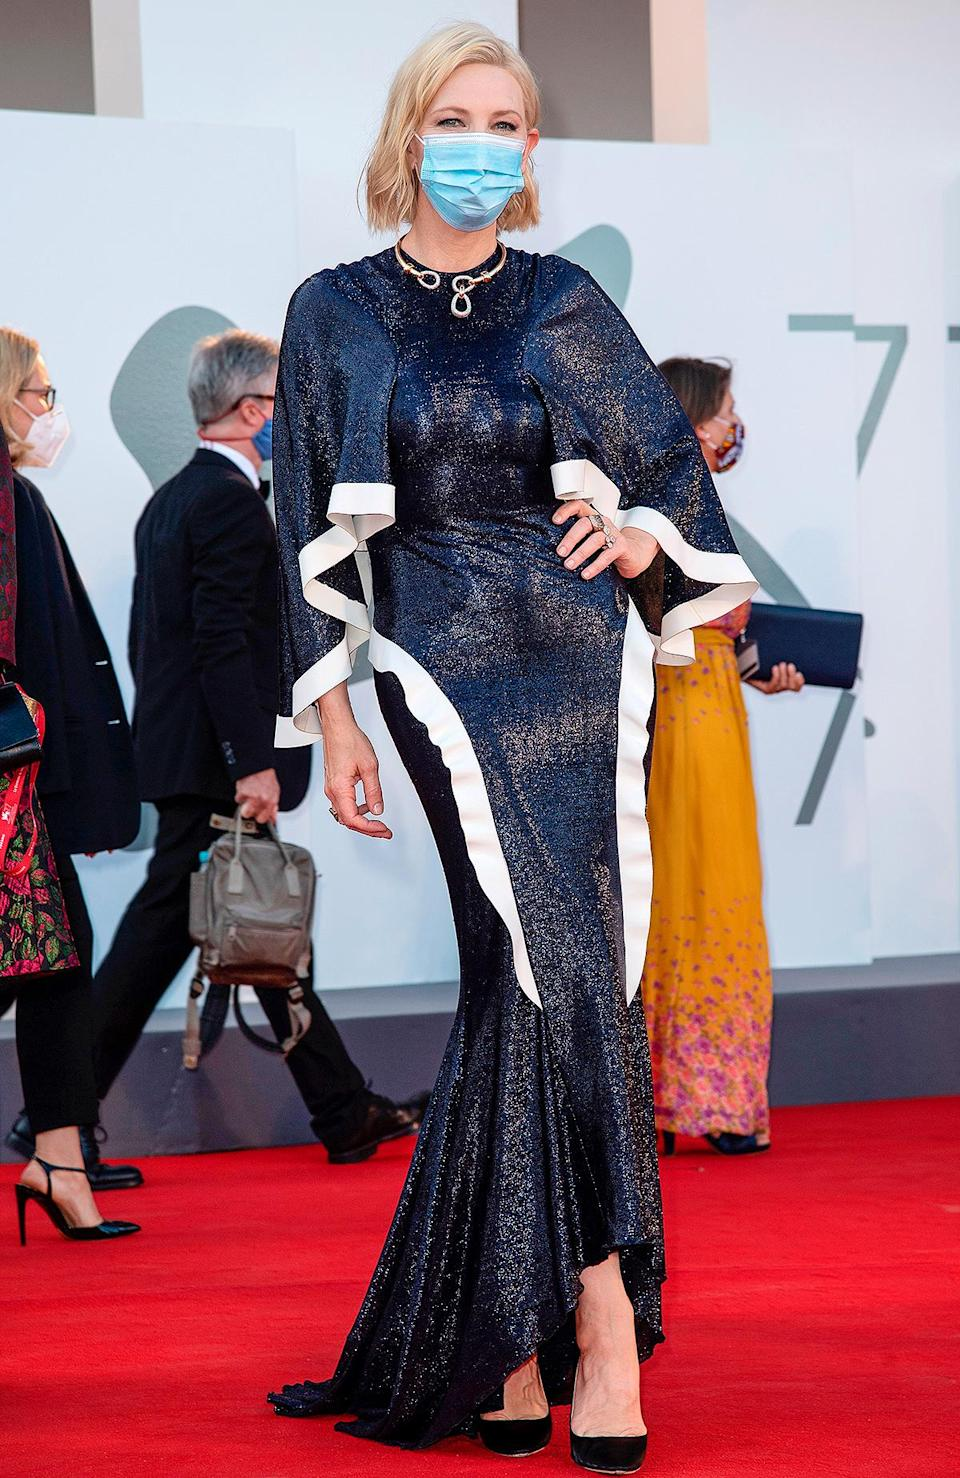 """<p>The 77th annual Venice Film Festival marked the first major red carpet since the pandemic started, and on Sept. 2 <a href=""""https://people.com/style/cate-blanchett-red-carpet-style-venice-film-festival-2020/"""" rel=""""nofollow noopener"""" target=""""_blank"""" data-ylk=""""slk:style icon Cate Blanchett"""" class=""""link rapid-noclick-resp"""">style icon Cate Blanchett</a> used it to promote sustainability (<a href=""""https://people.com/style/cate-blanchett-rewears-esteban-cortazar-gown-at-venice-film-festival/"""" rel=""""nofollow noopener"""" target=""""_blank"""" data-ylk=""""slk:rewearing an Esteban Cortazar gown from 2015"""" class=""""link rapid-noclick-resp"""">rewearing an Esteban Cortazar gown from 2015</a>) and safety (posing with a mask). It doesn't get more 2020 than that!</p>"""